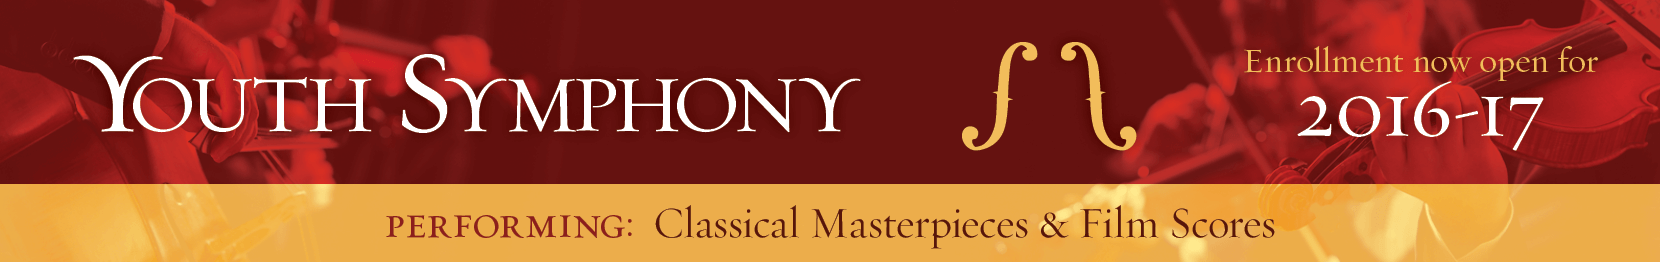 Youth Symphony at Castle Rock Music  |  Enrollment now open for 2016-17 Season  |  Performing: Classical Masterpieces & Film Scores  |  To Enroll Contact Alan: alan@castlerockmusic.com